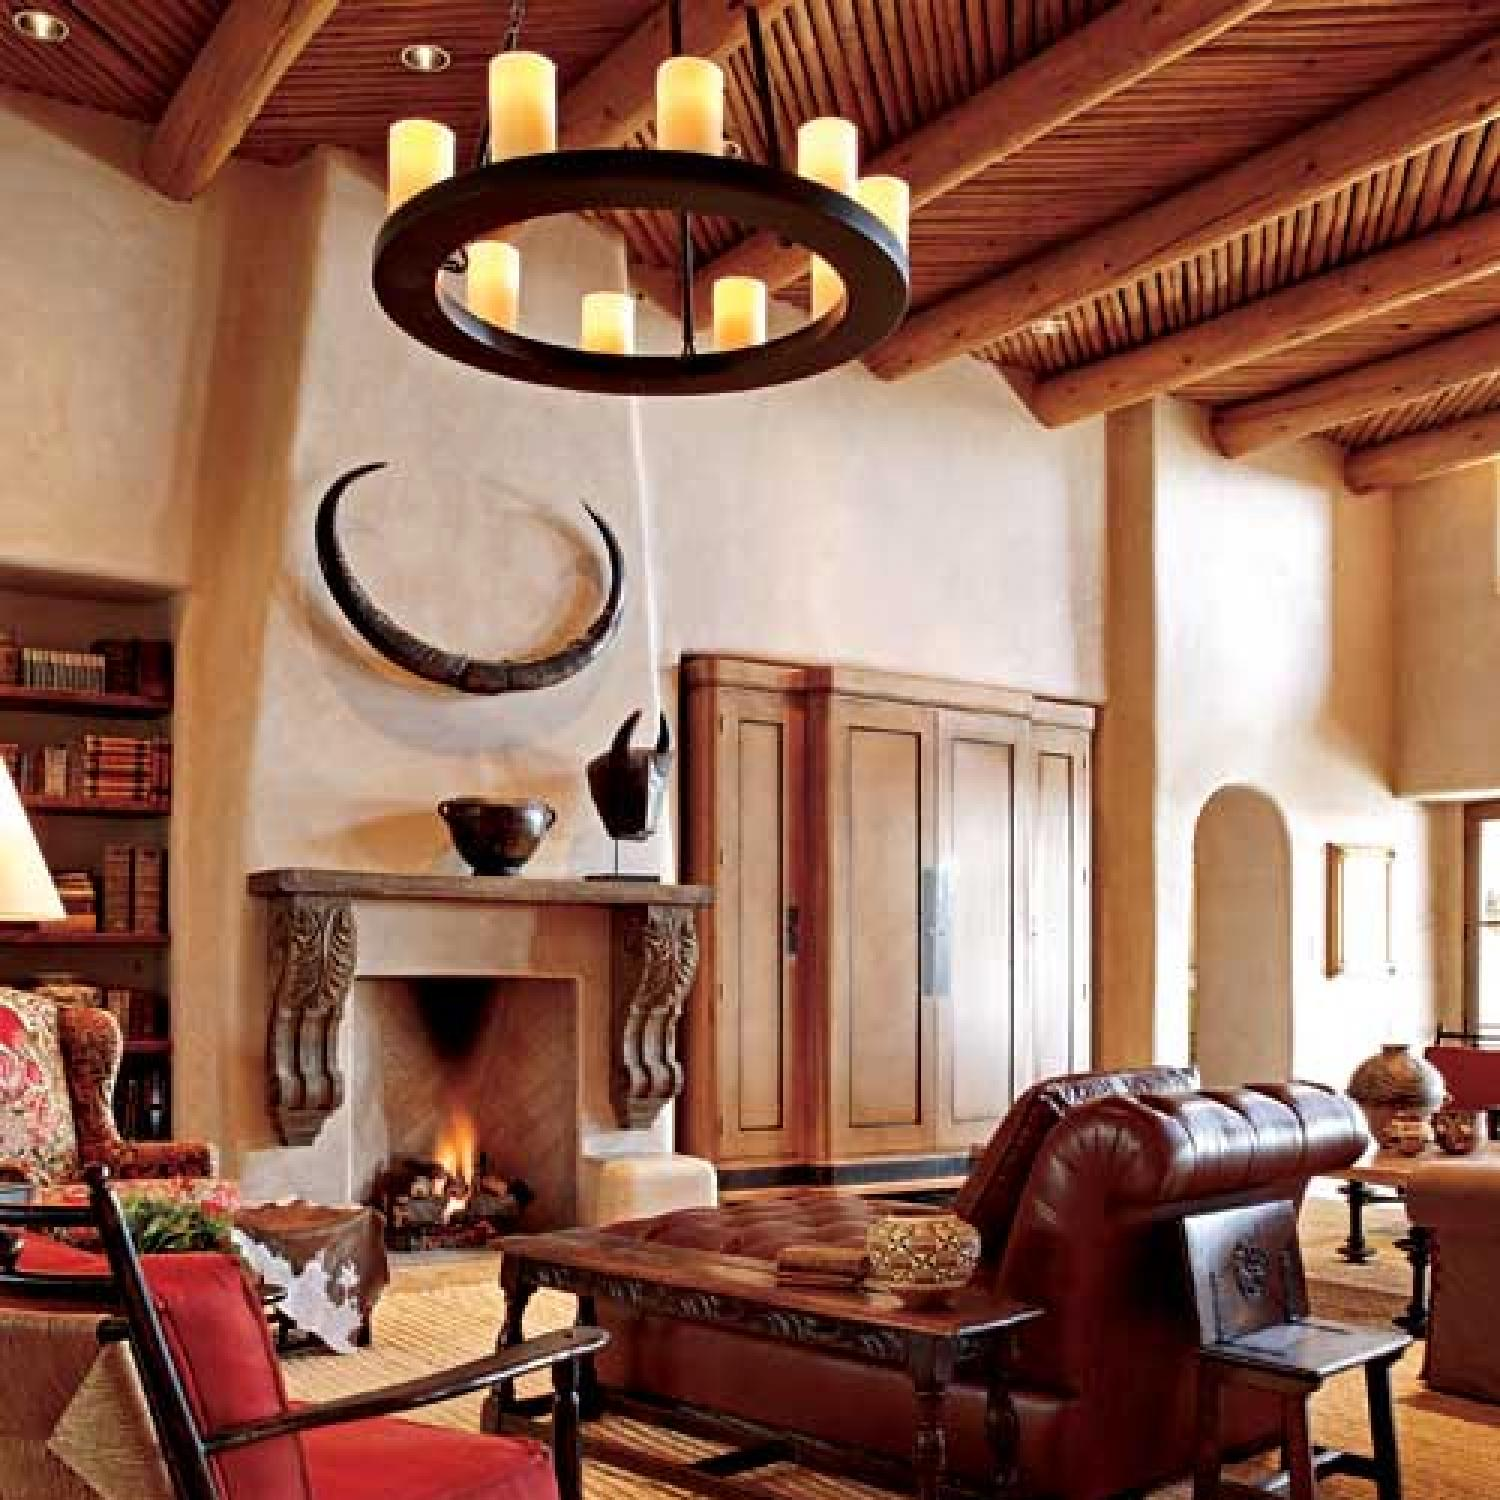 Southwestern Design pueblo-style home with traditional southwestern design